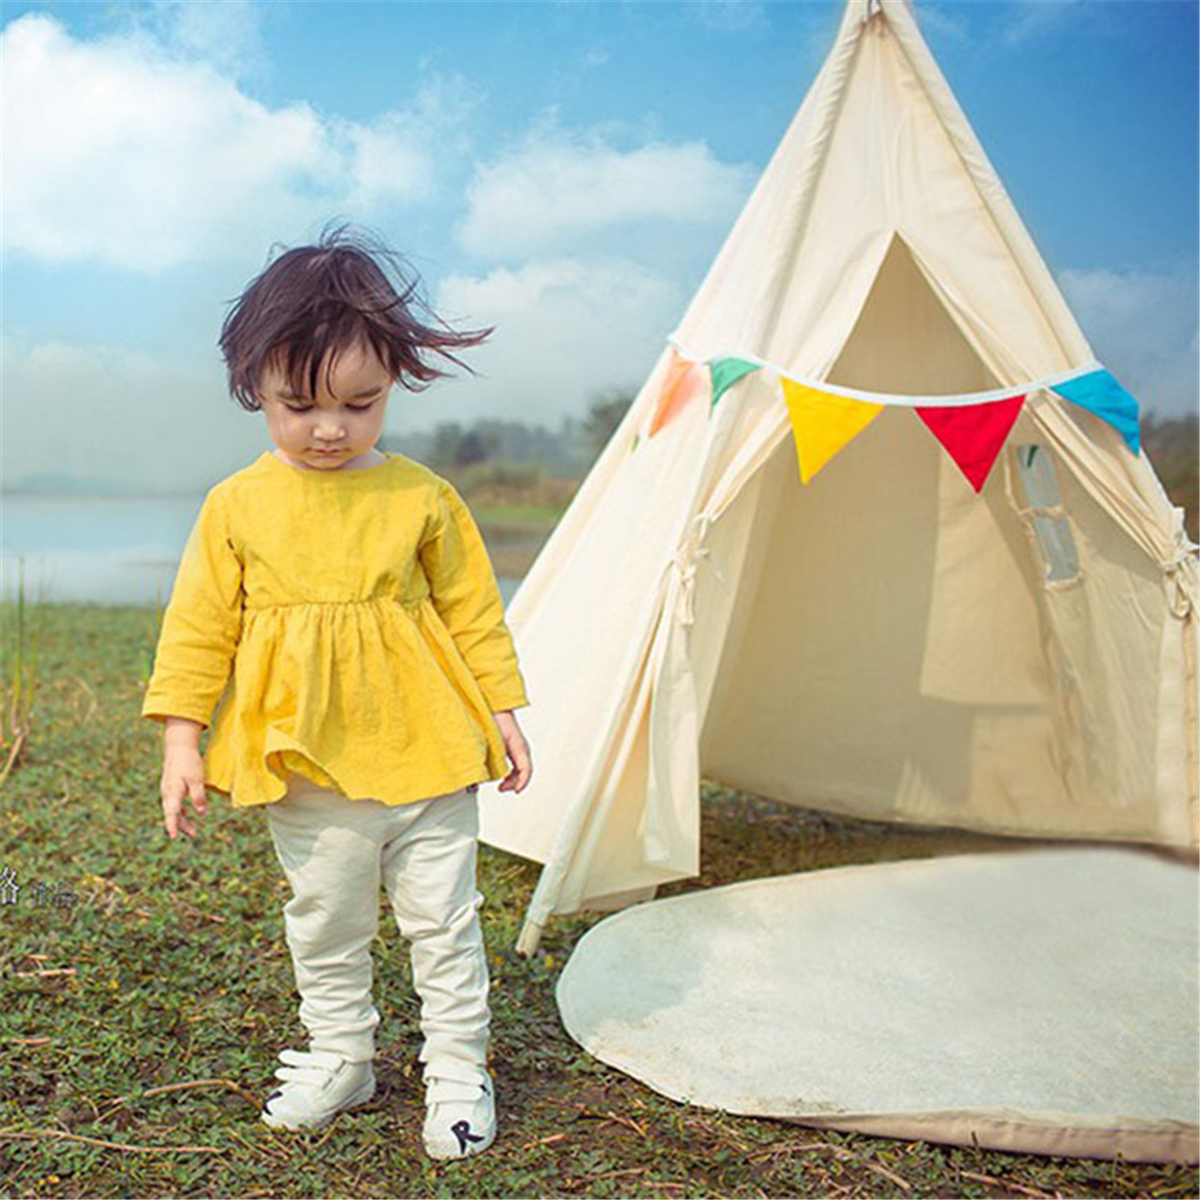 Portable White Teepee Tent Kids Playhouse Children Sleeping Dome Photograph Backdrop 51